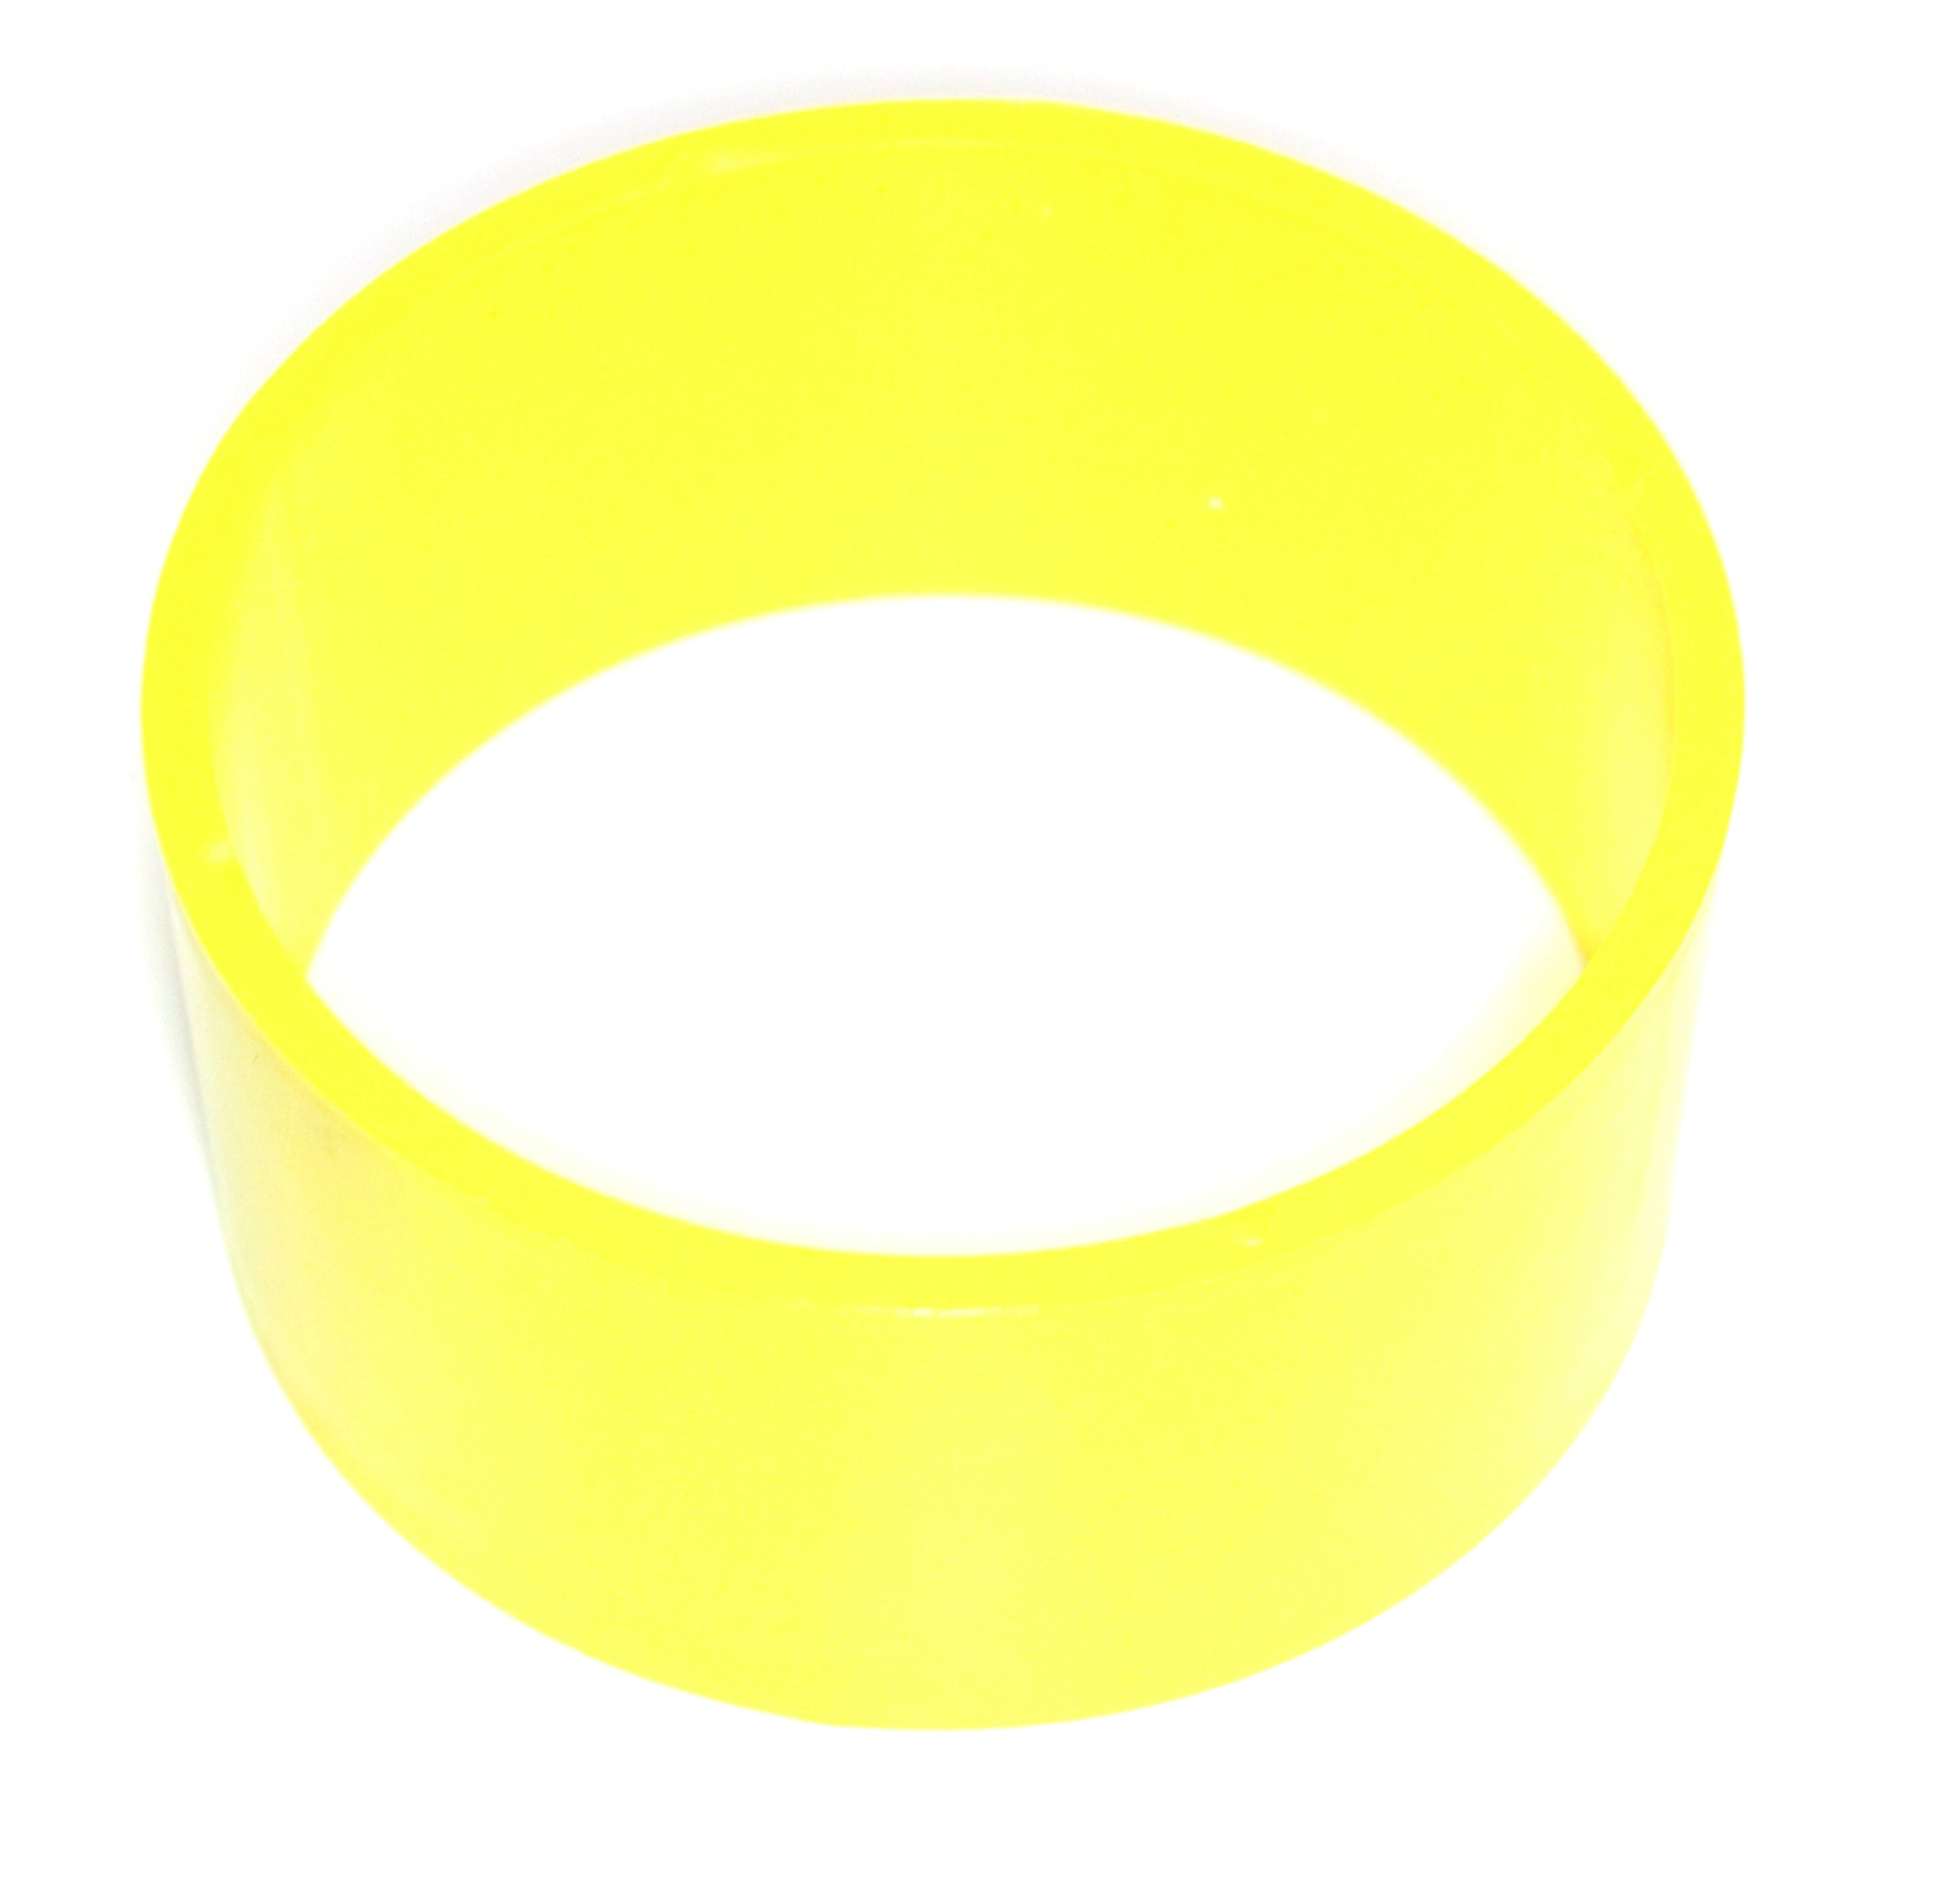 Aftermarket Wear Ring Compatible with SeaDoo Part Number # 271000653 &  271000904 | gsx gtx xp rxdi gti le